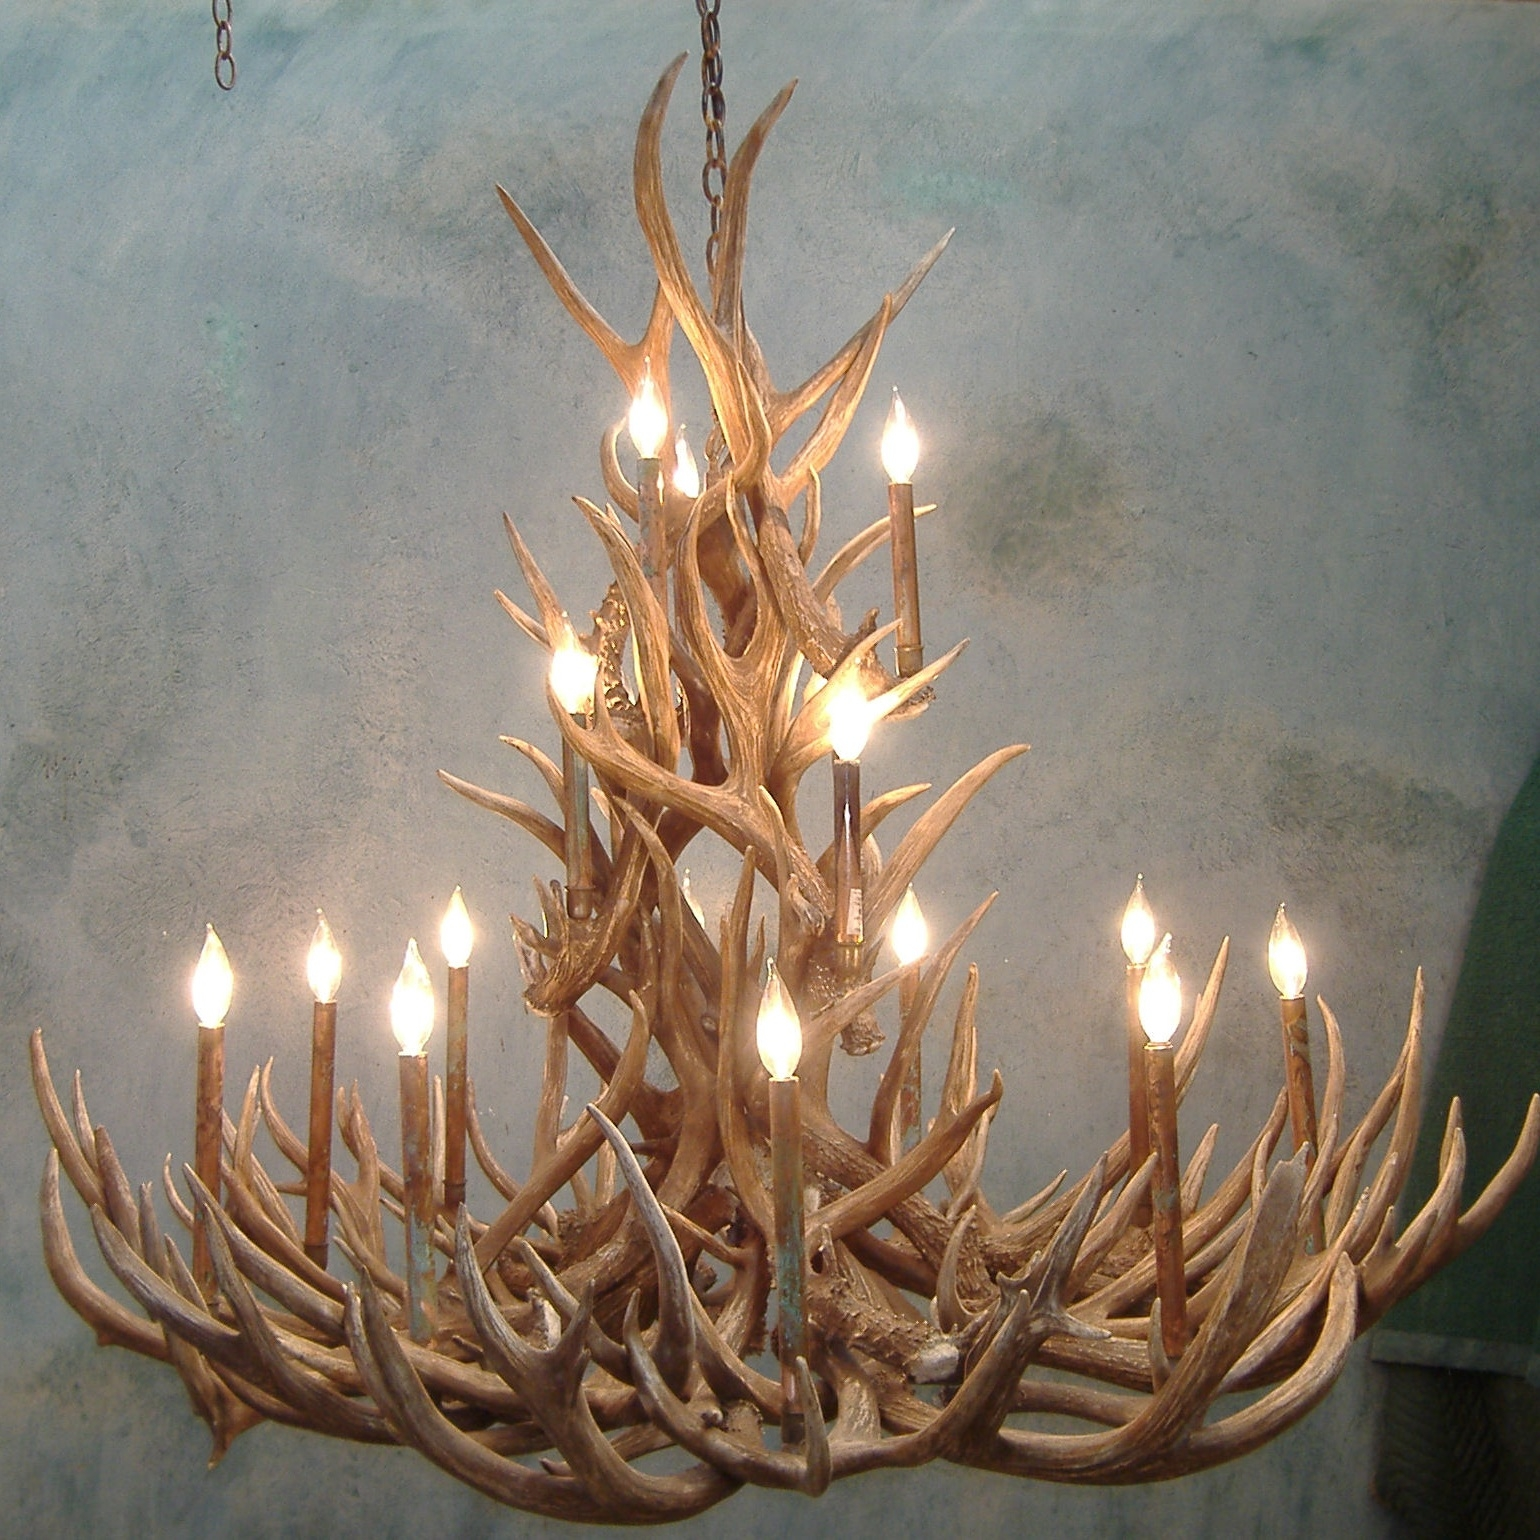 Tall Spruce Mule Deer Antler Chandelier Intended For Antler Chandeliers And Lighting (Image 12 of 15)